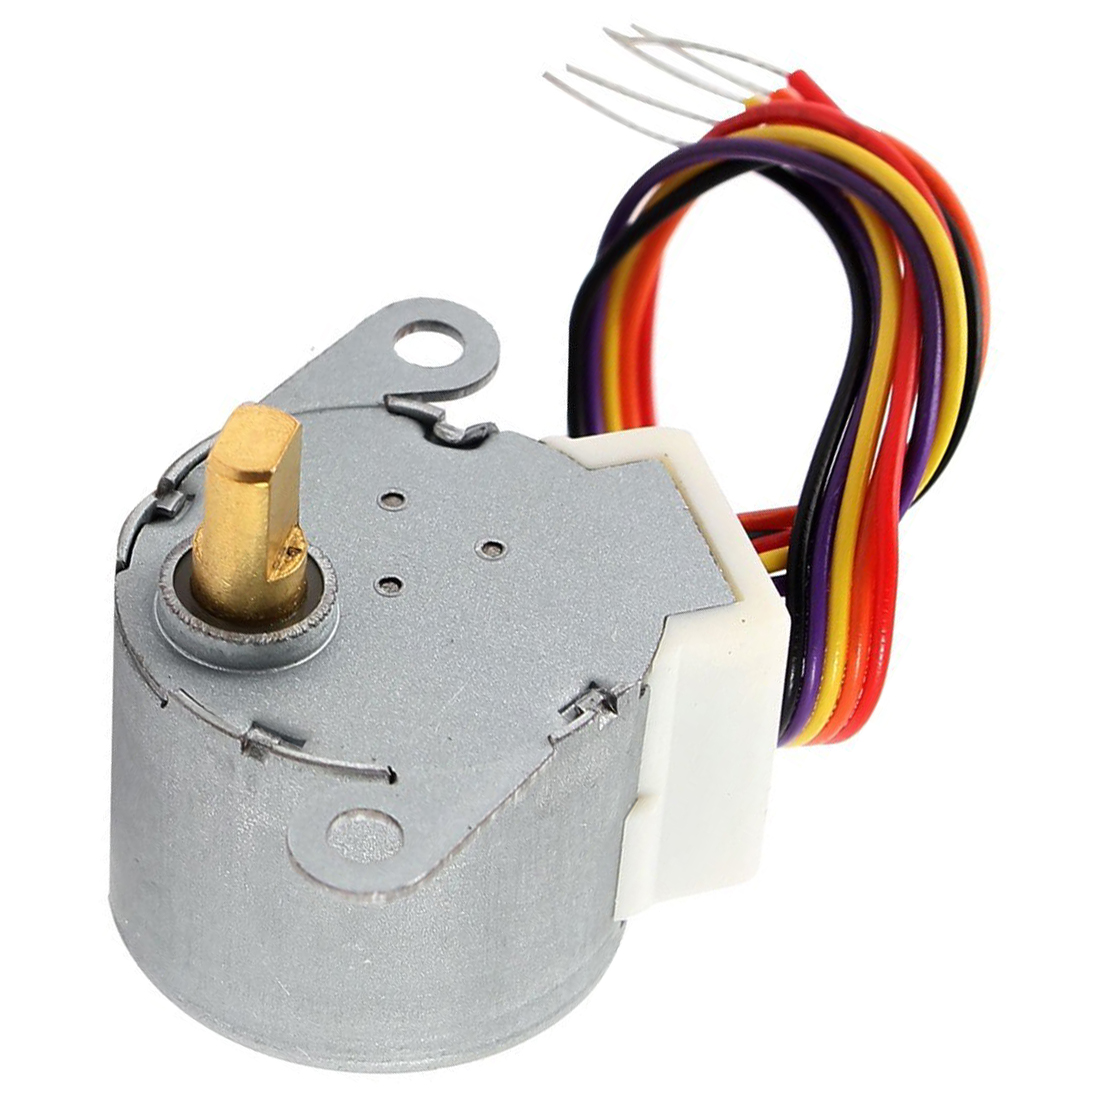 BMBY Hot DC <font><b>12V</b></font> CNC Reducing Stepping Stepper Motor 0.6A 10oz.in <font><b>24BYJ48</b></font> Silver image